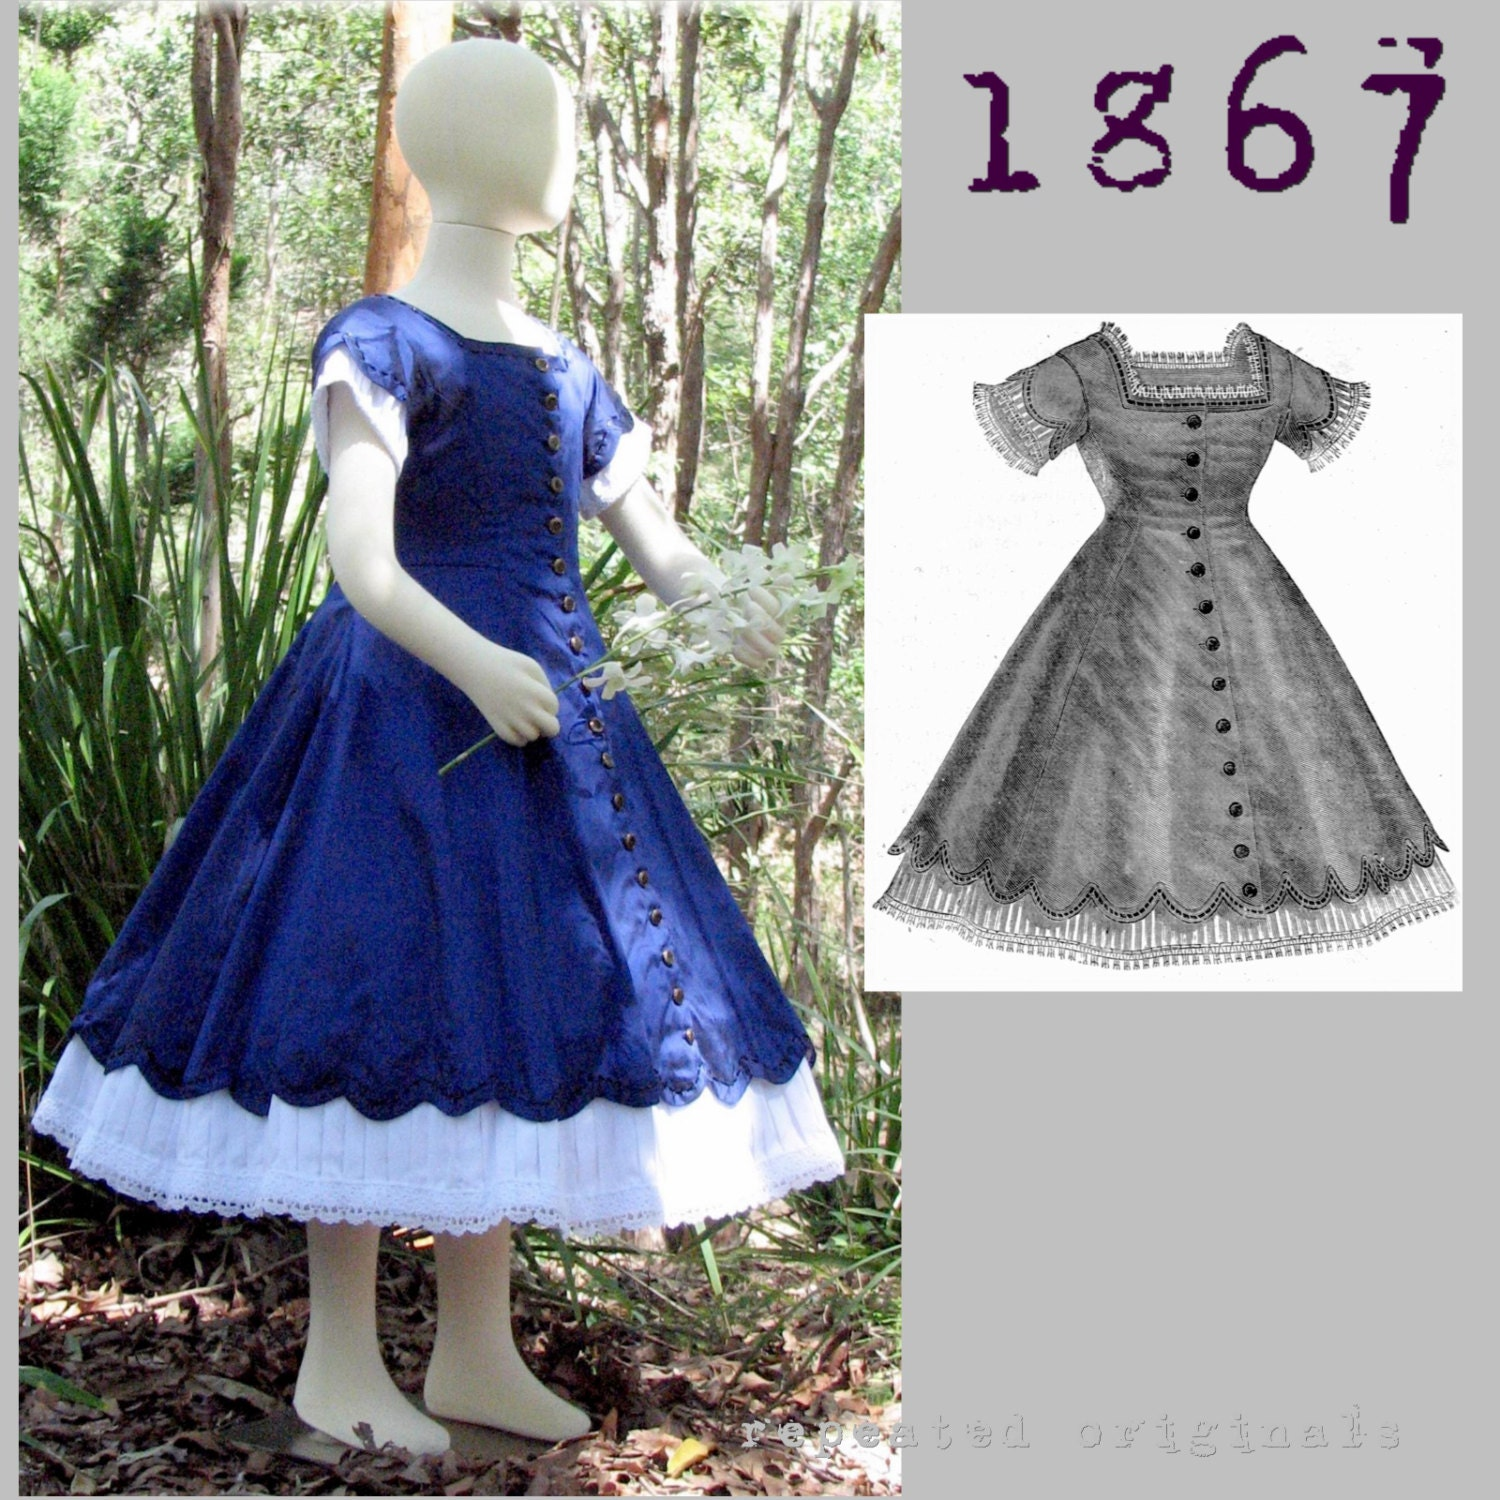 1867 Day Dress for a girl 8 to 10 years old Victorian